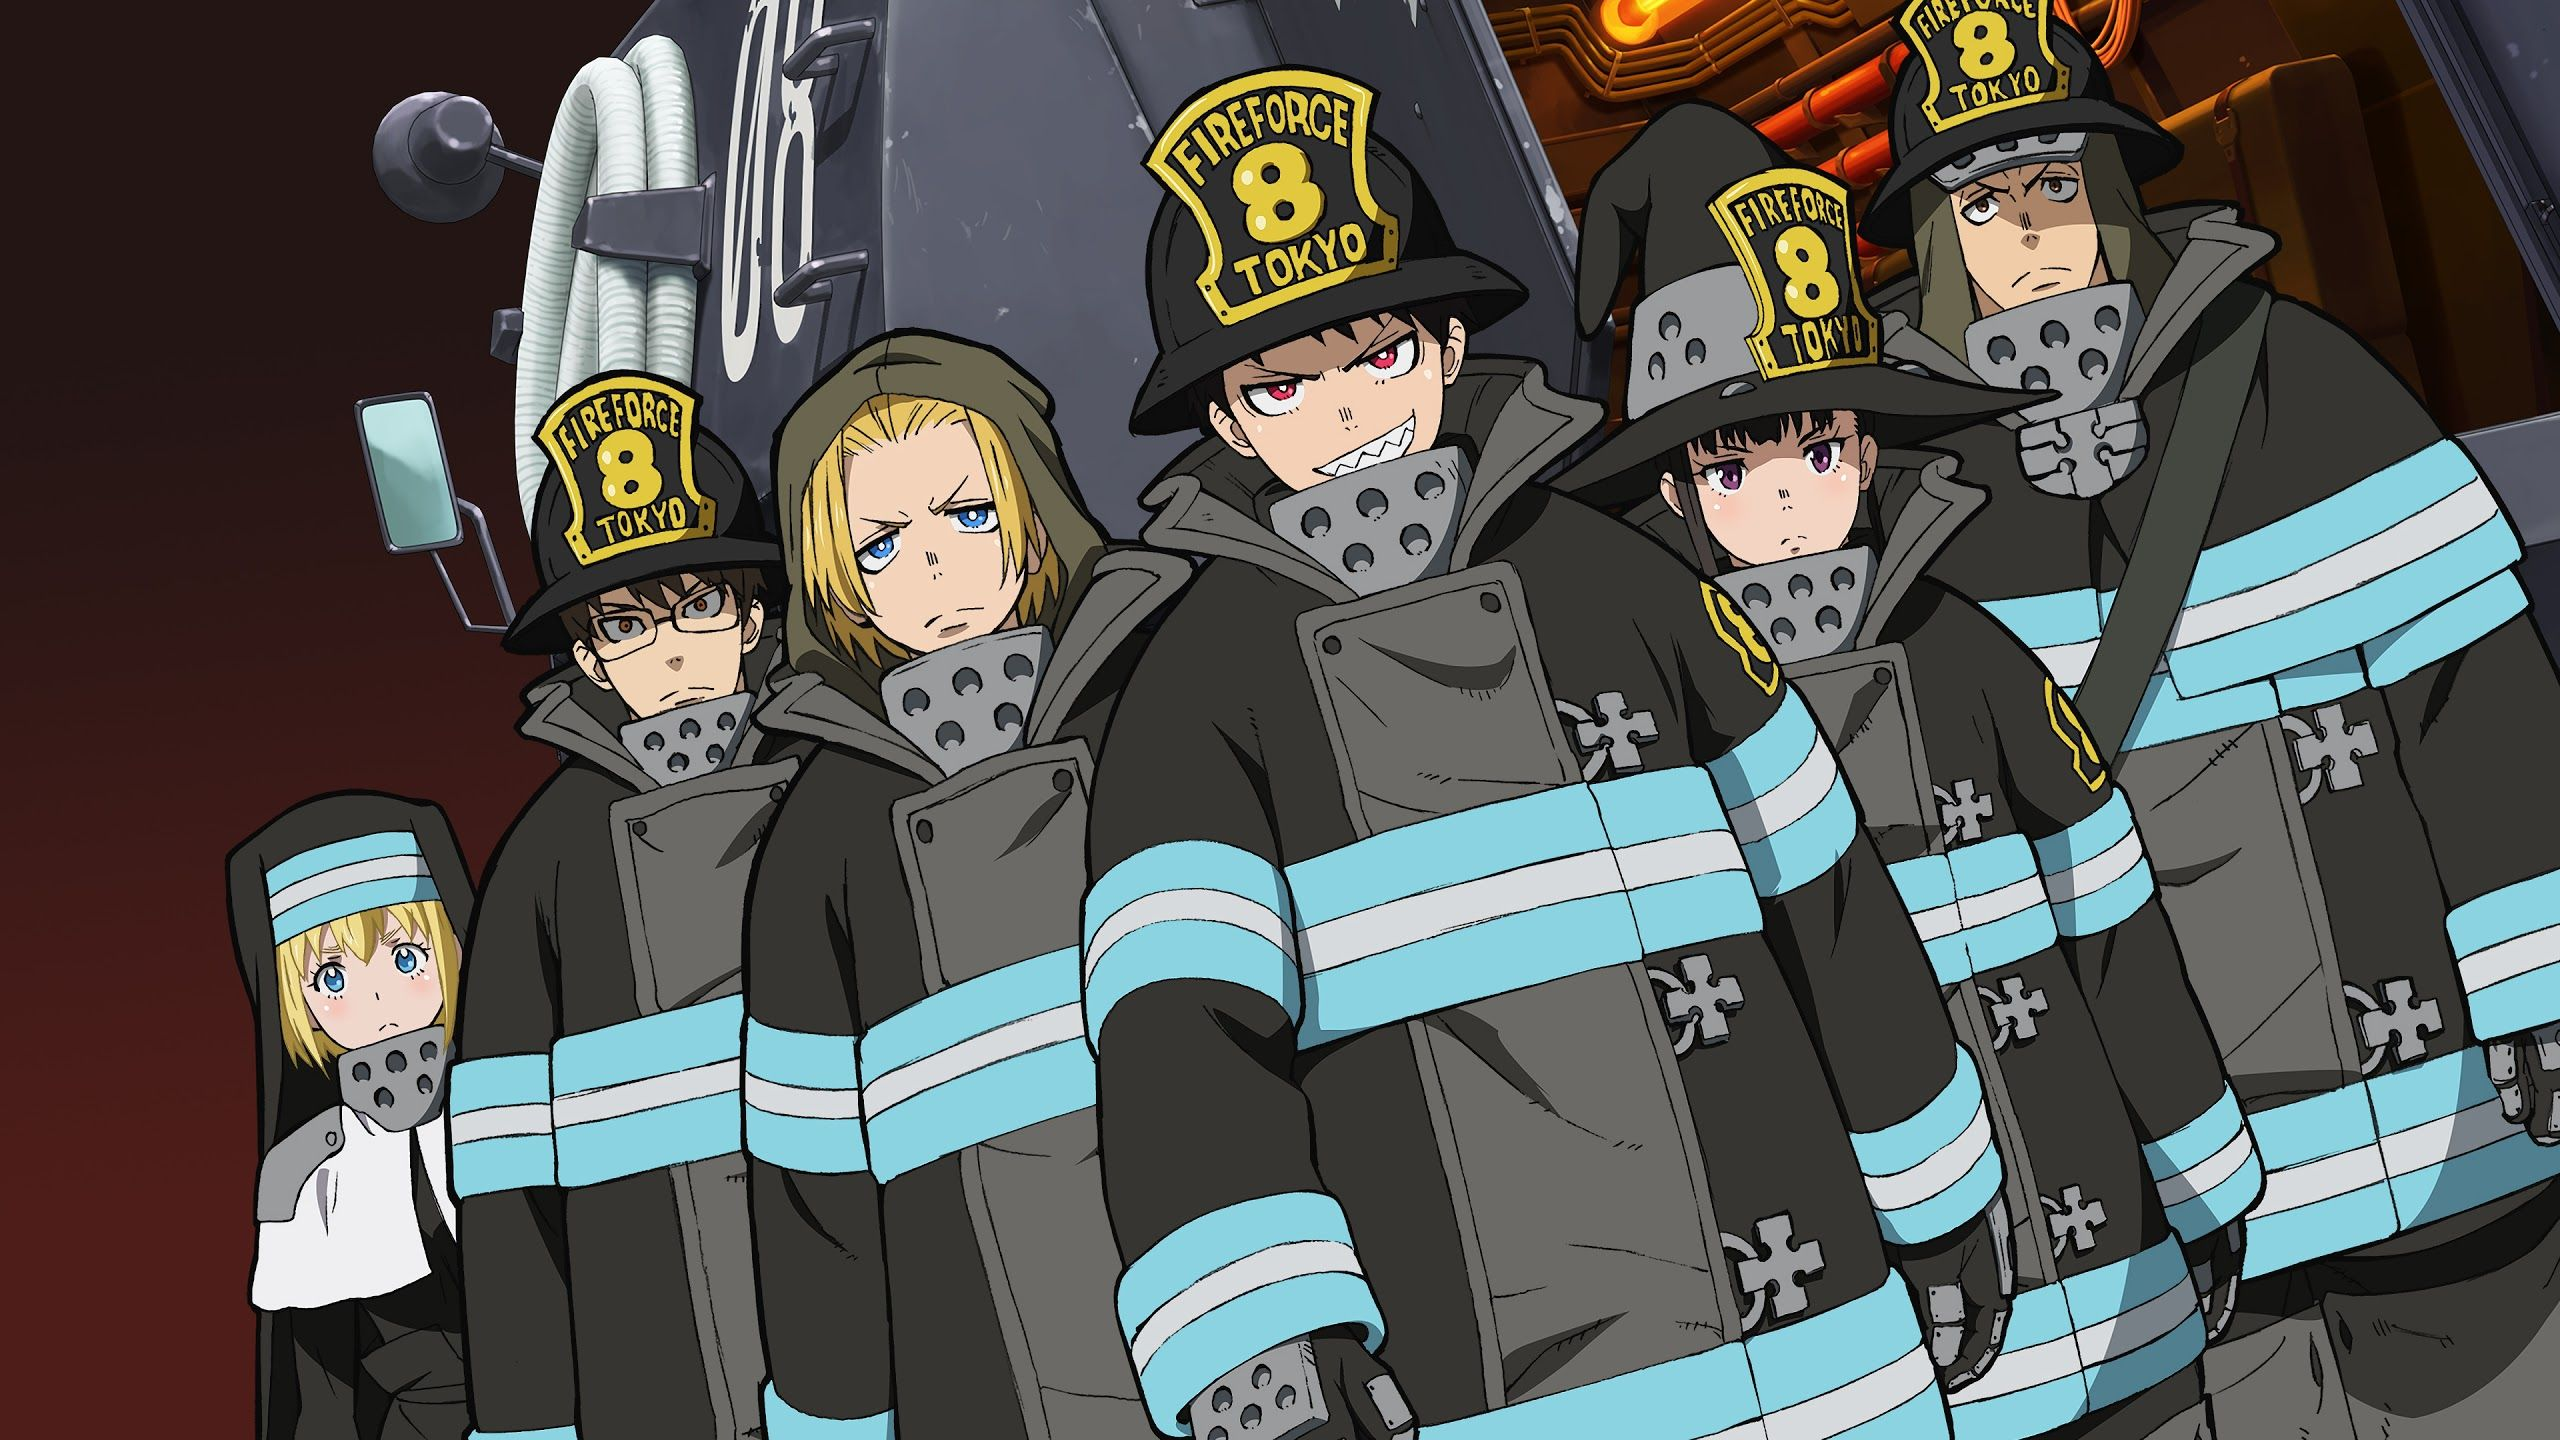 Enen No Shouboutai Wallpapers Top Free Enen No Shouboutai Backgrounds Wallpaperaccess You can also upload and share your favorite fire force wallpapers. enen no shouboutai wallpapers top